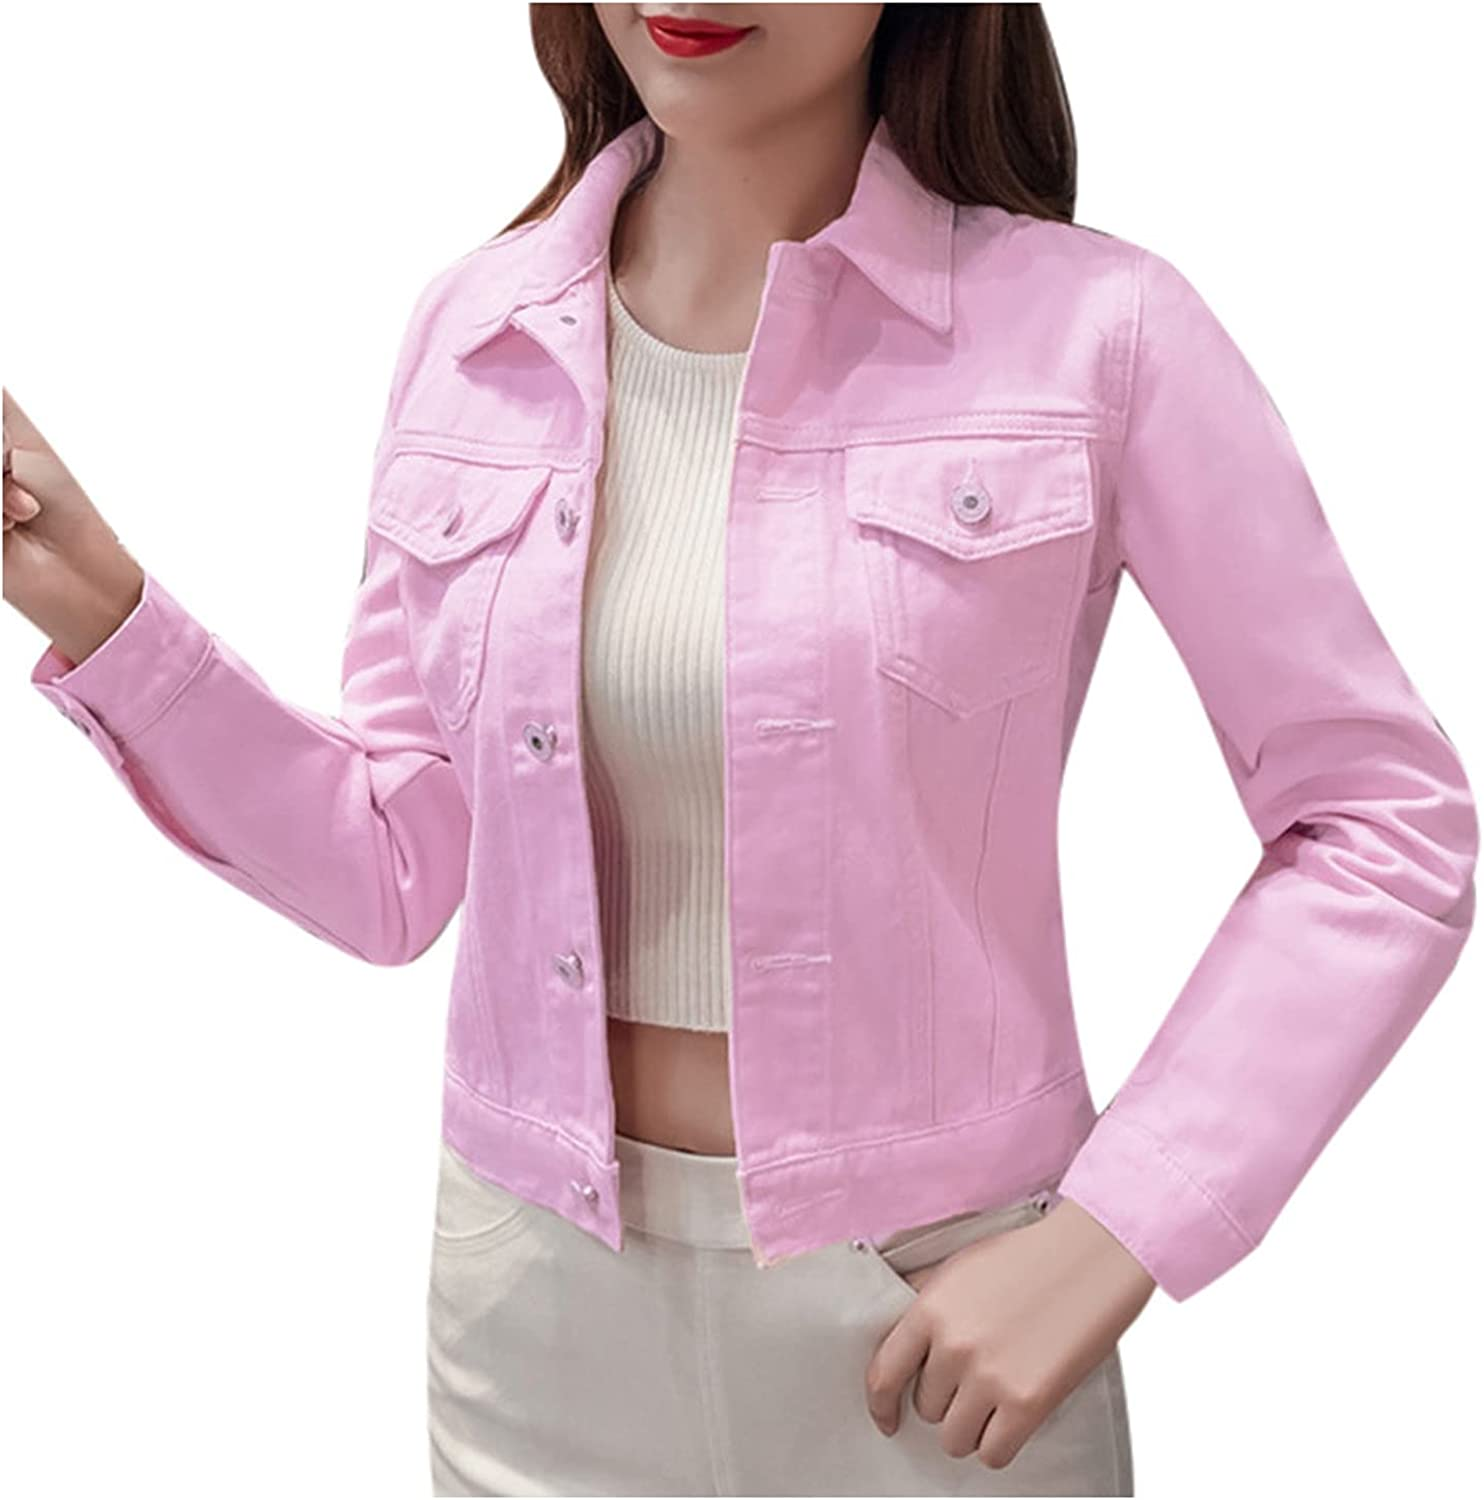 Denim Jacket for Women Fashion Color Cas Max Quality inspection 83% OFF Button Coat Solid